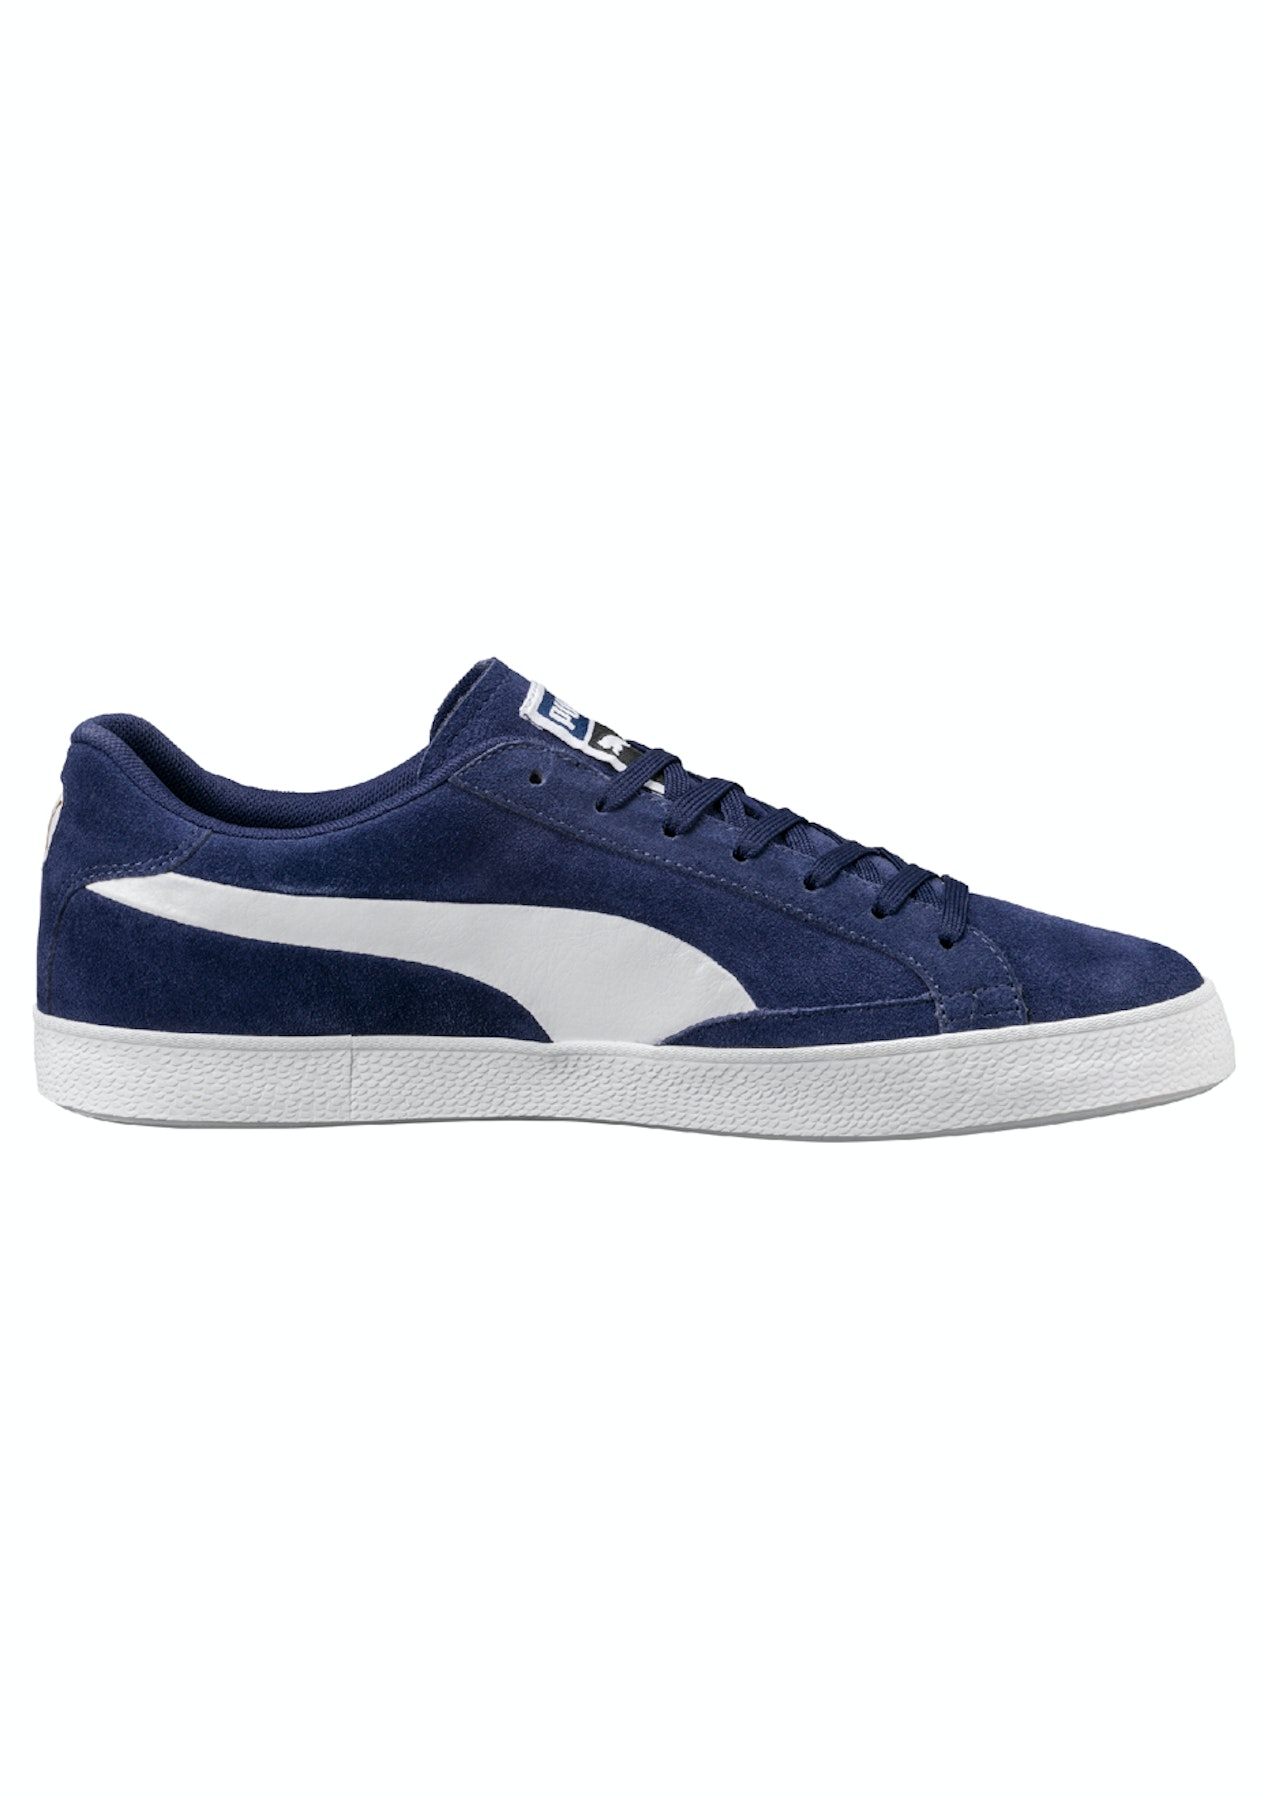 11b353bbf1d63c Puma Mens - Match Vulc 2 Blue Depths - Mens Mixed Brands - Onceit